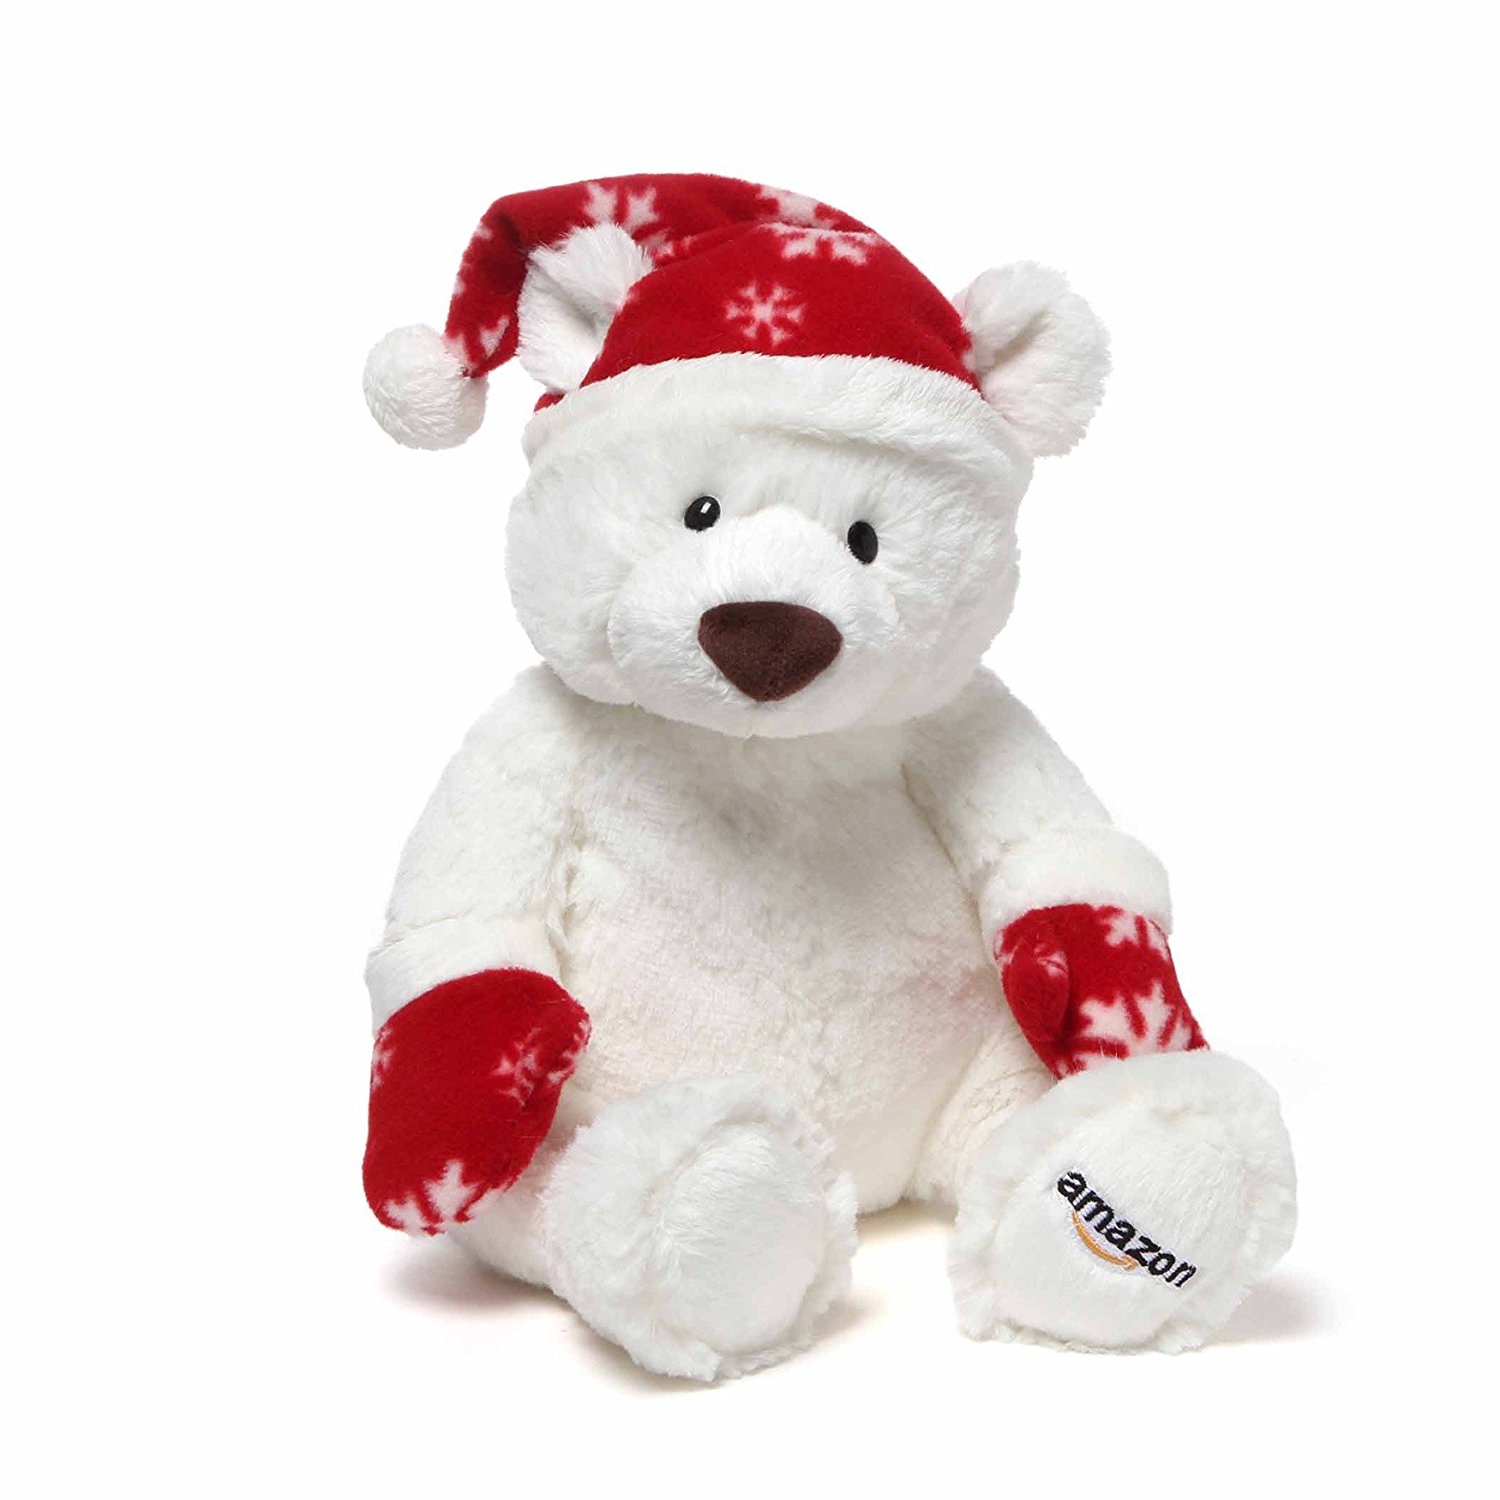 spend 100 on toys on amazon get the amazon 2016 holiday bear for free